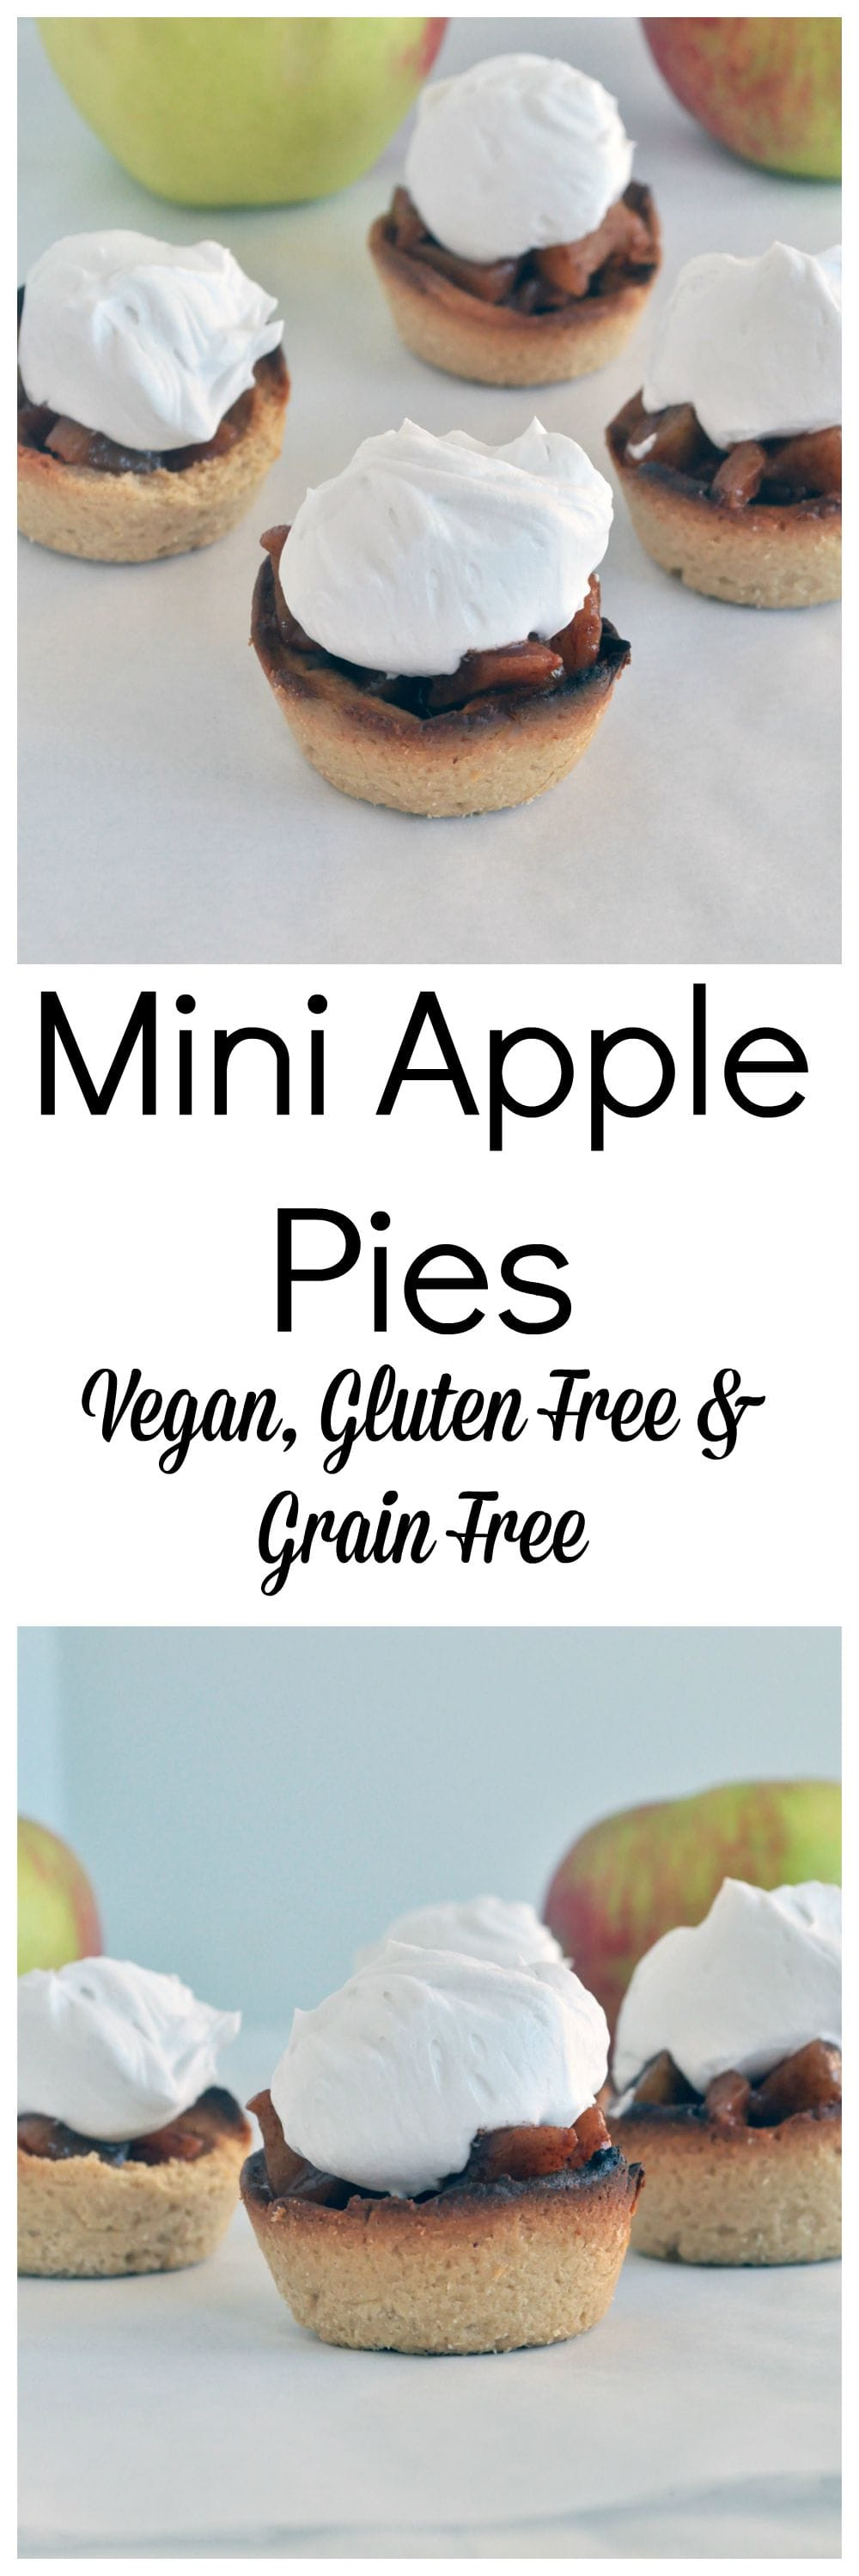 Mini Apple Pies P